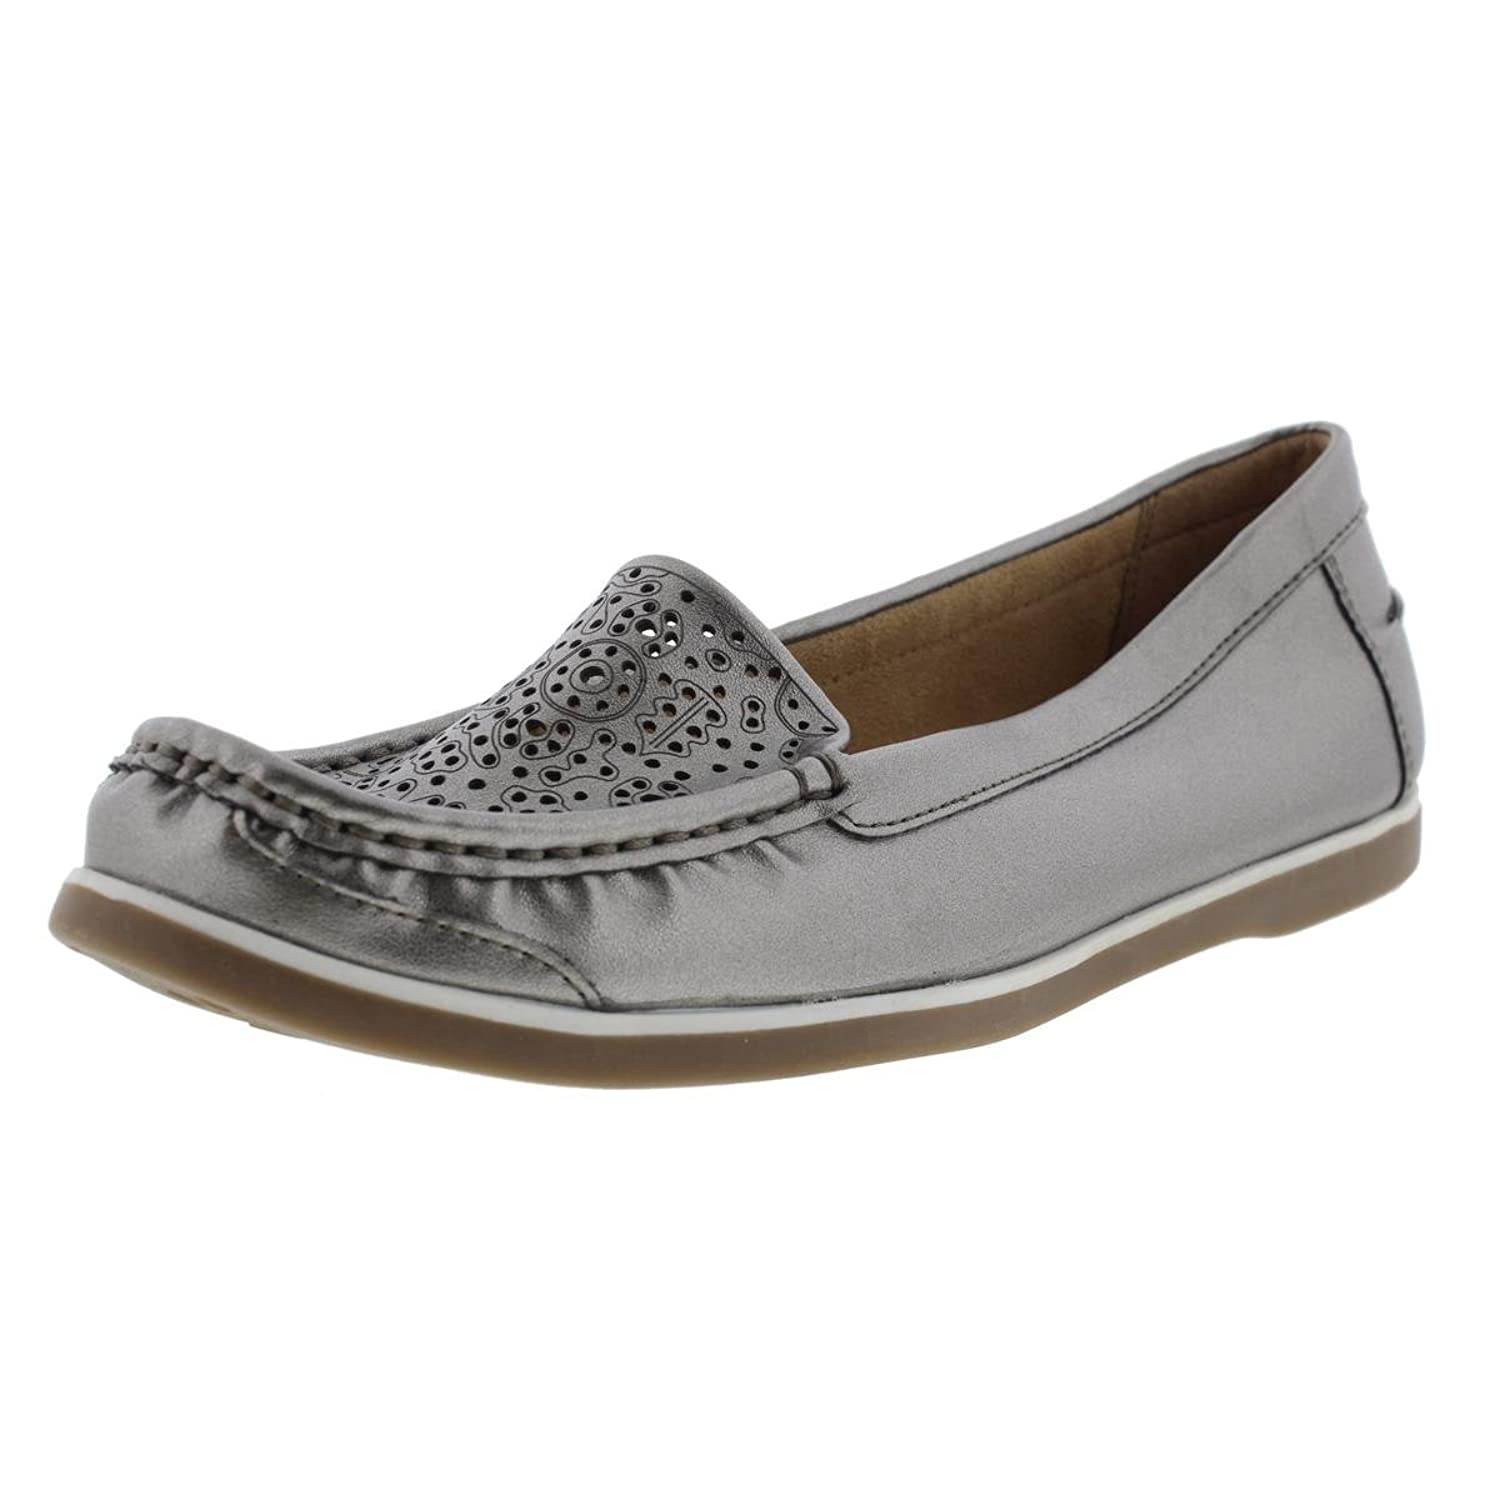 Naturalizer Women's Hooper, Pewter Loafers